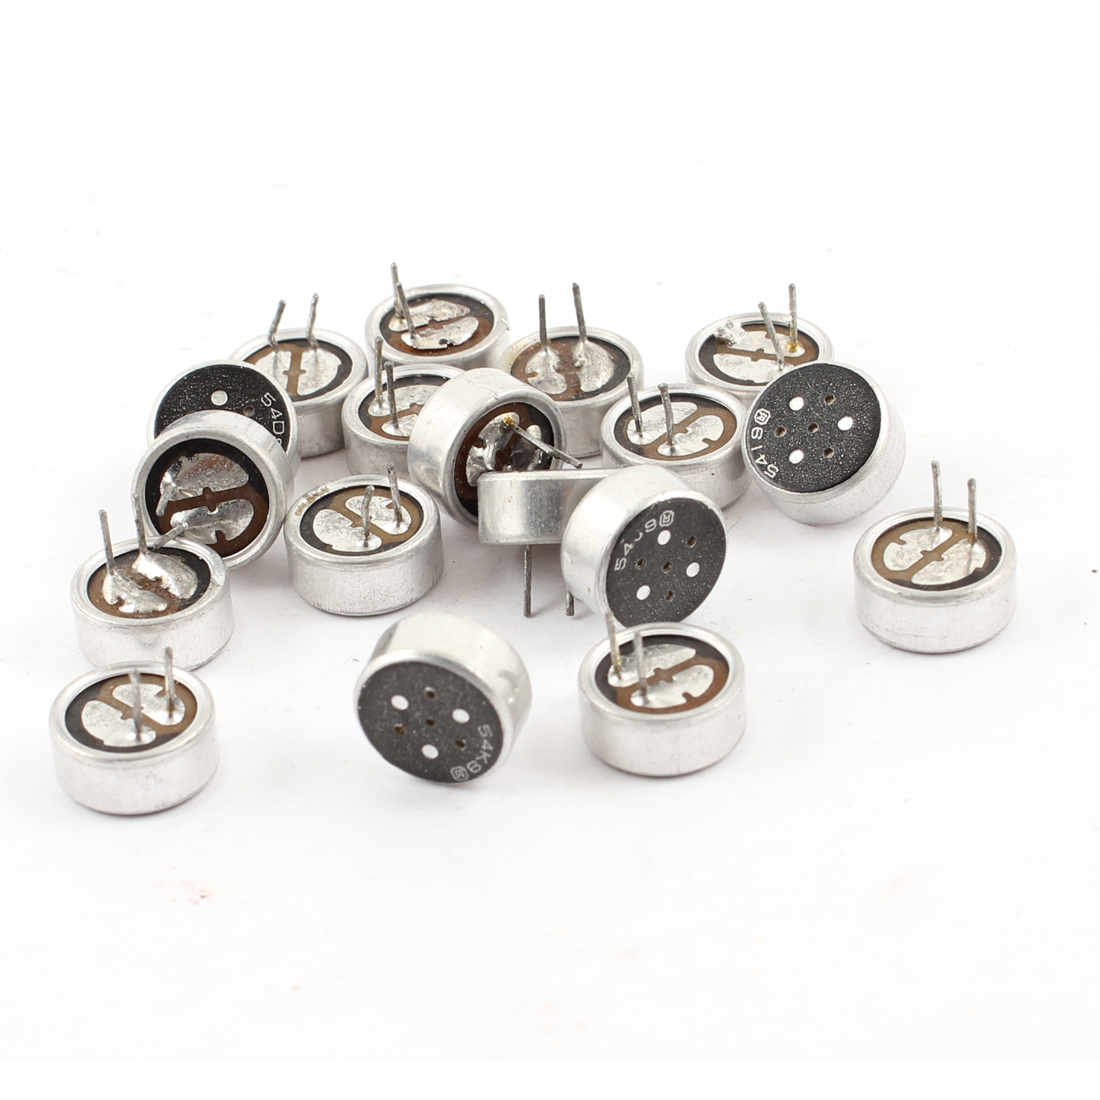 18 Pcs 2 Terminal Electret Condenser MIC Capsule Repair Parts for PC Phone MP3 MP4